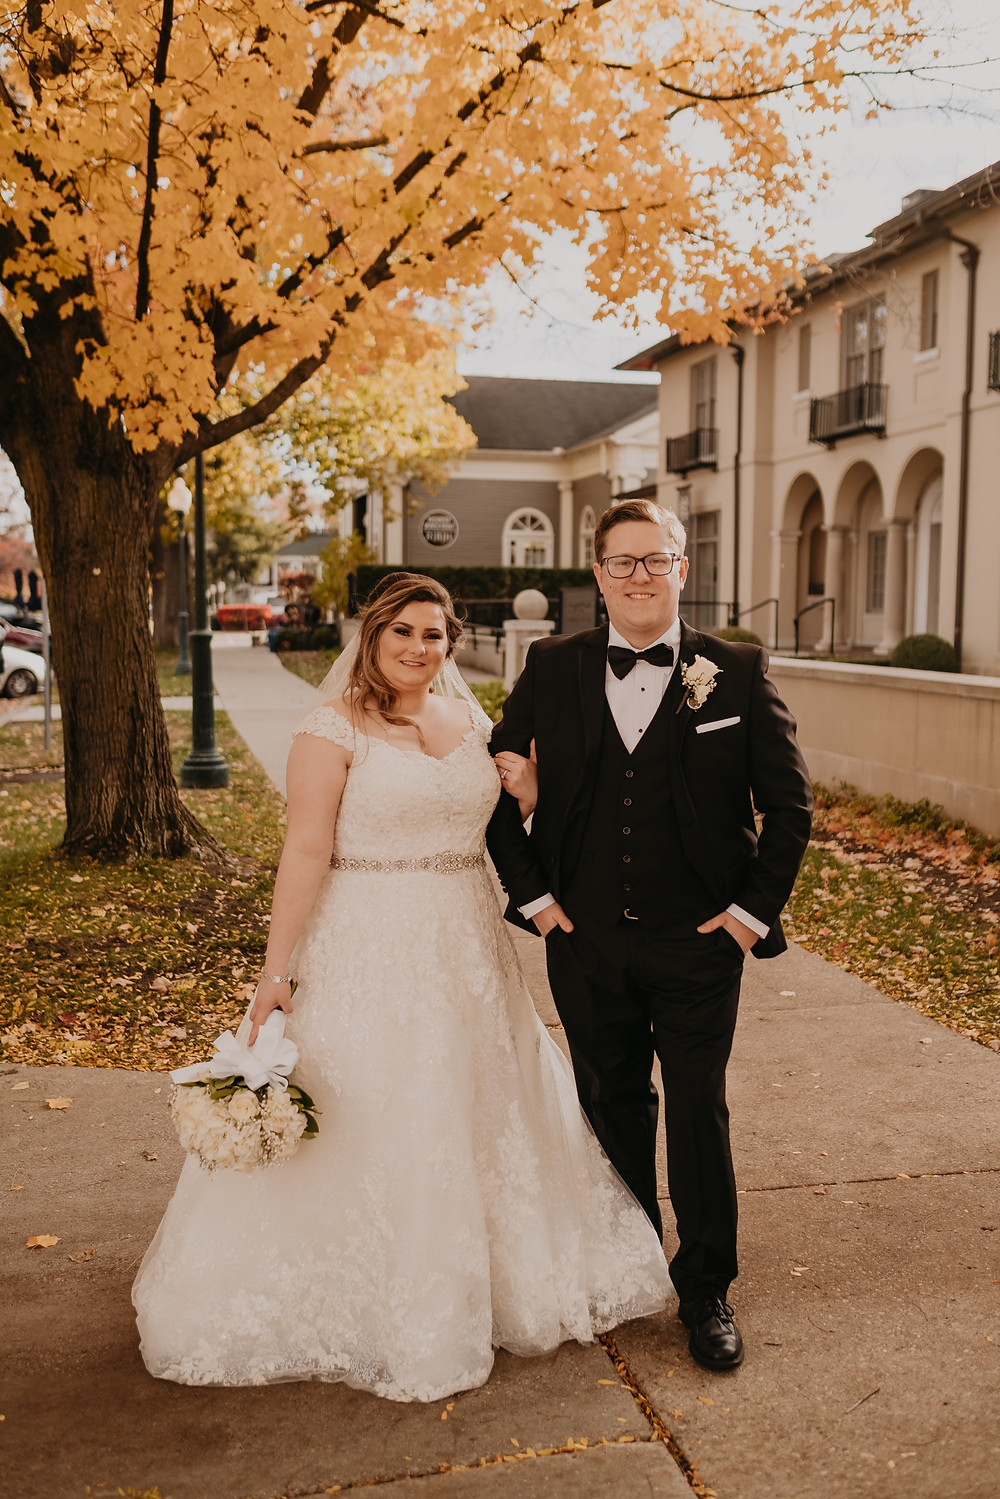 Rochester Michigan wedding photos. Photographed by Nicole Leanne Photography.